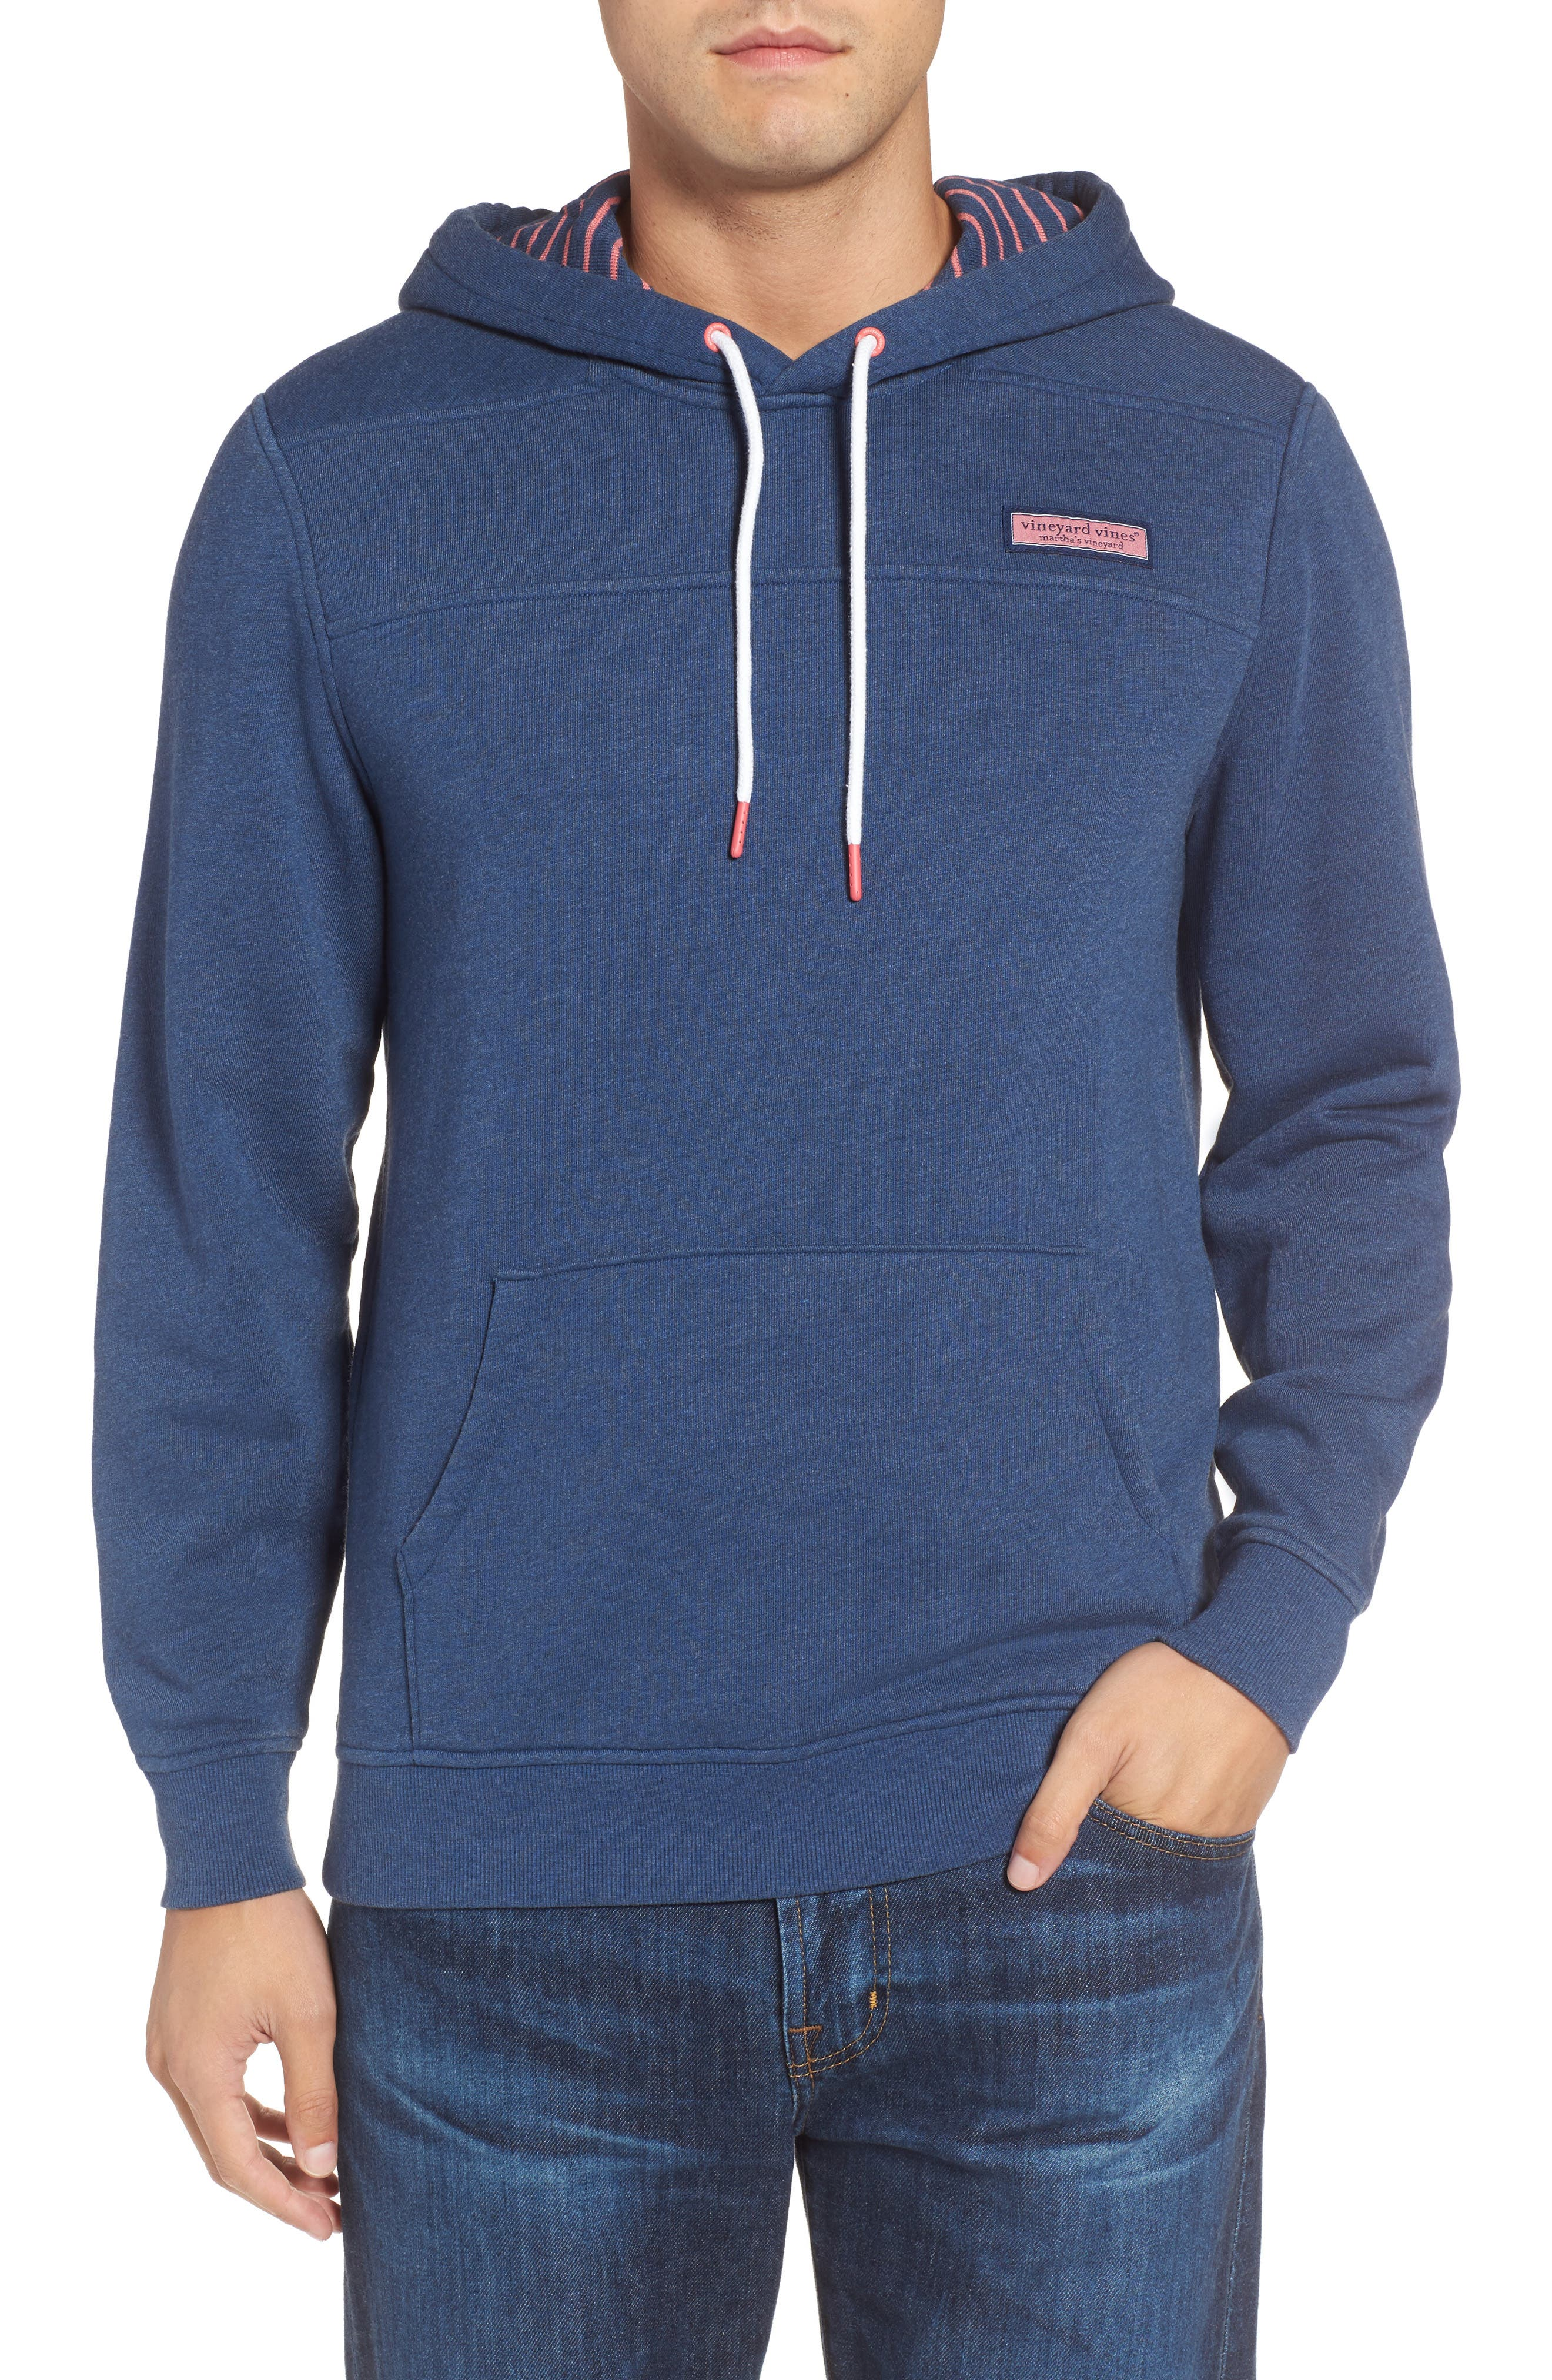 Main Image - vineyard vines Washed Cotton Pullover Hoodie